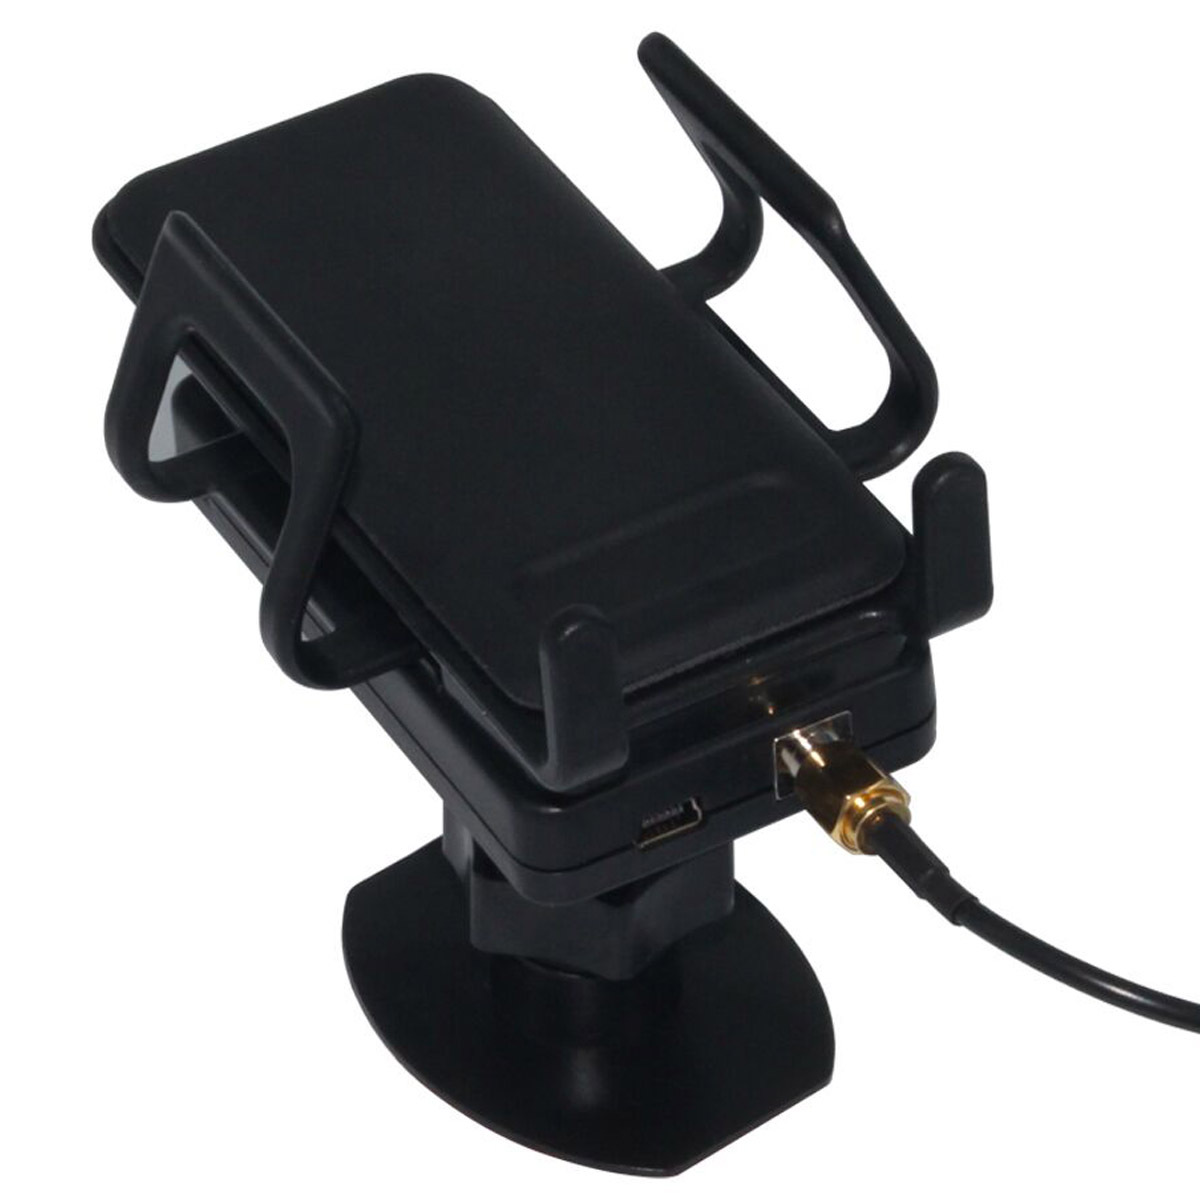 Smart Signal With Antenna On-board Phone Holder Mobile Phone 3 Gwcdma 2100MHz Signal Amplifier